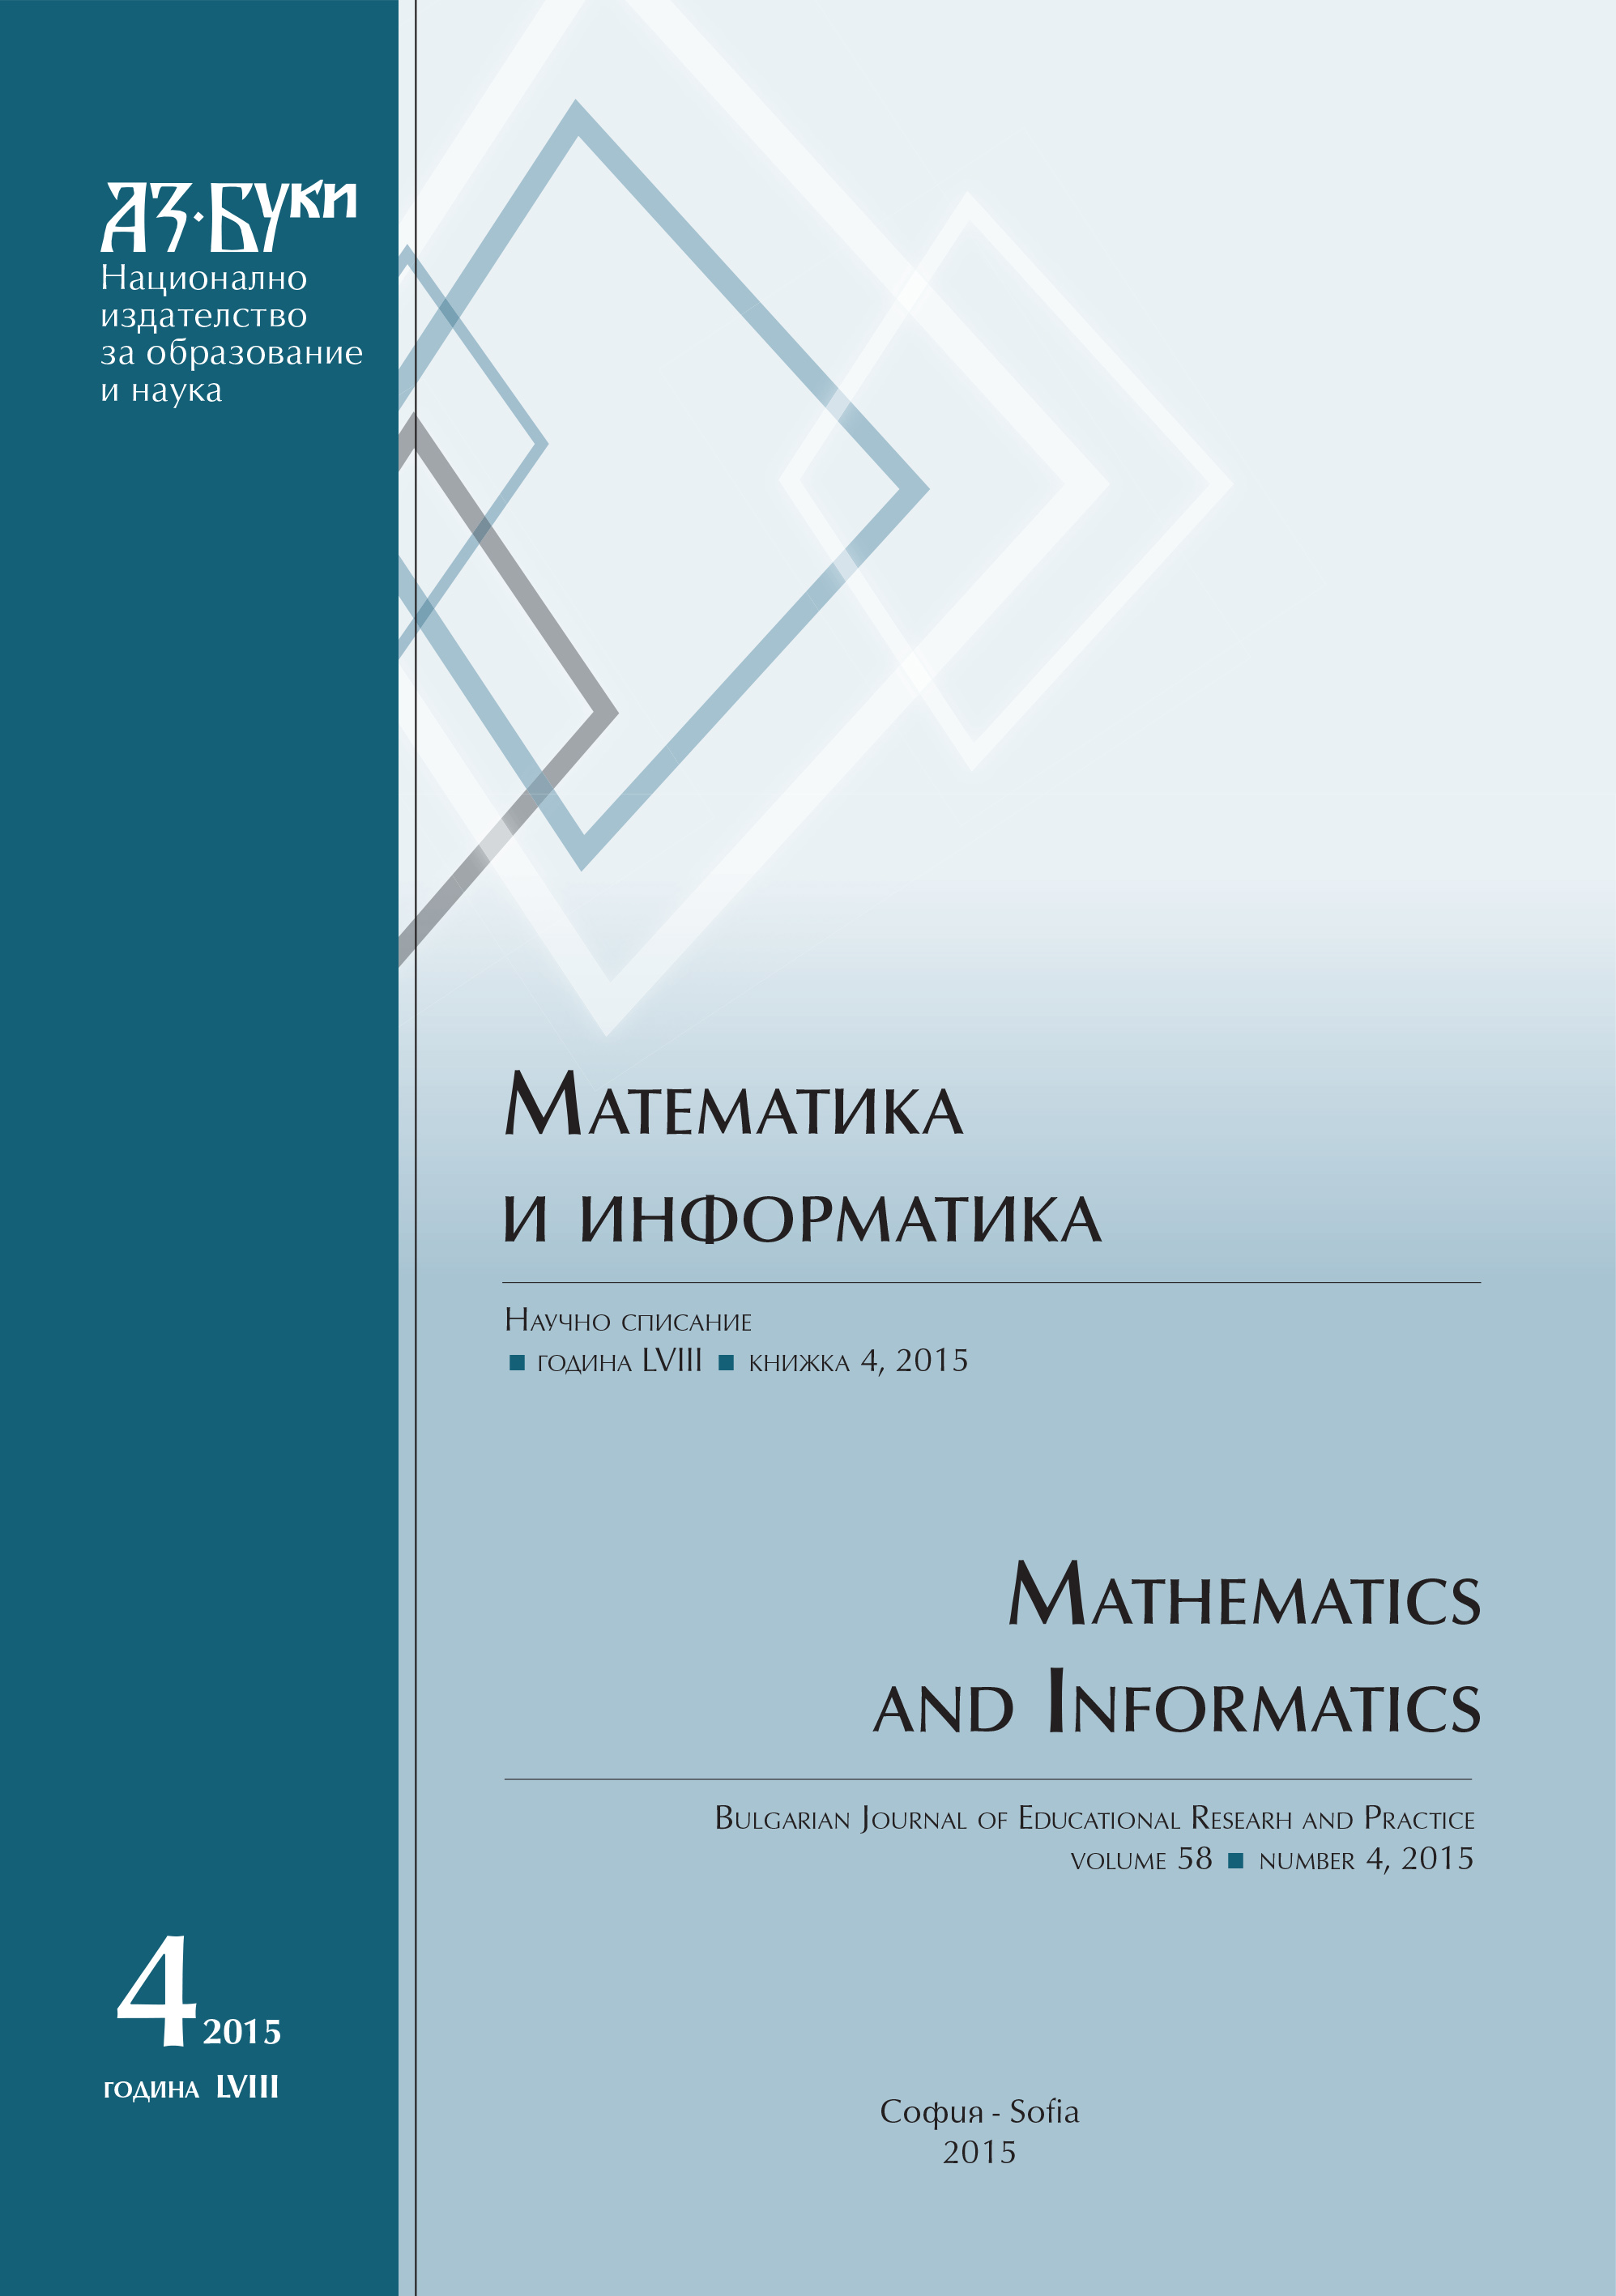 "Analysis of the Paper for the Regional Round of the International Mathematical Competition for University Students ""European Kangaroo"" Cover Image"